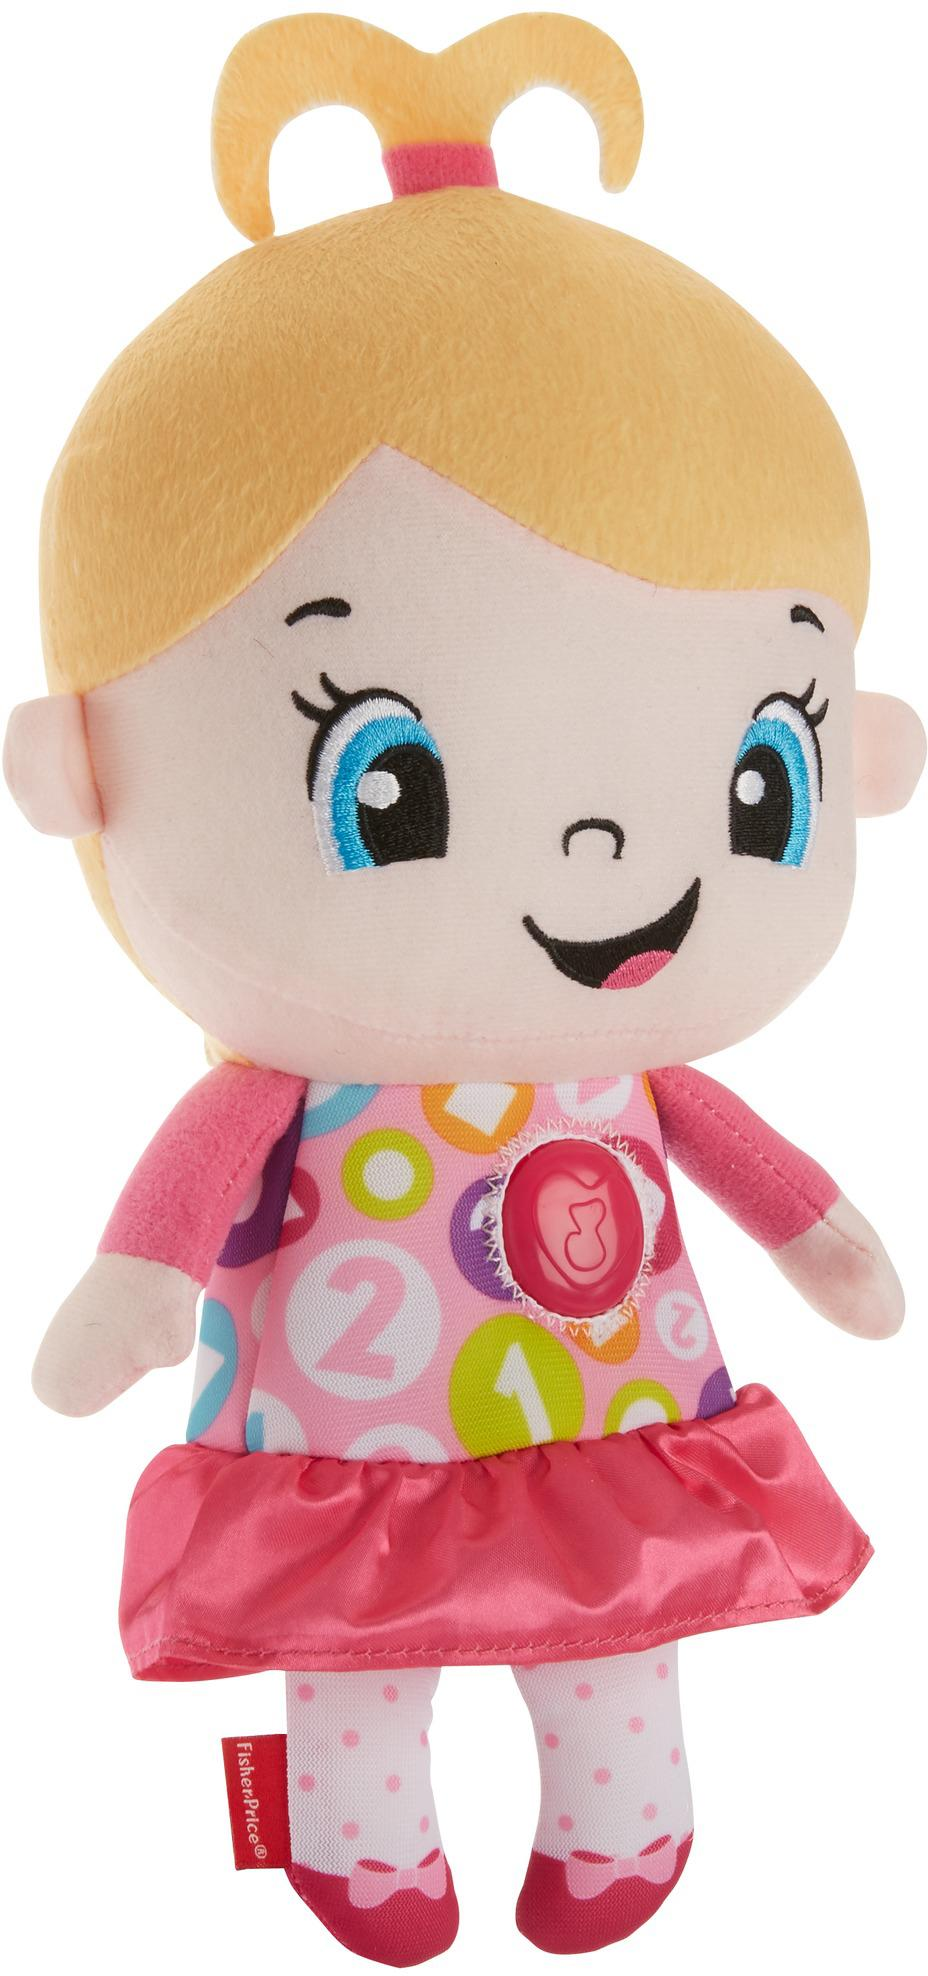 Amazon.com: Fisher-Price Laugh & Learn My aprendizaje muñeca ...